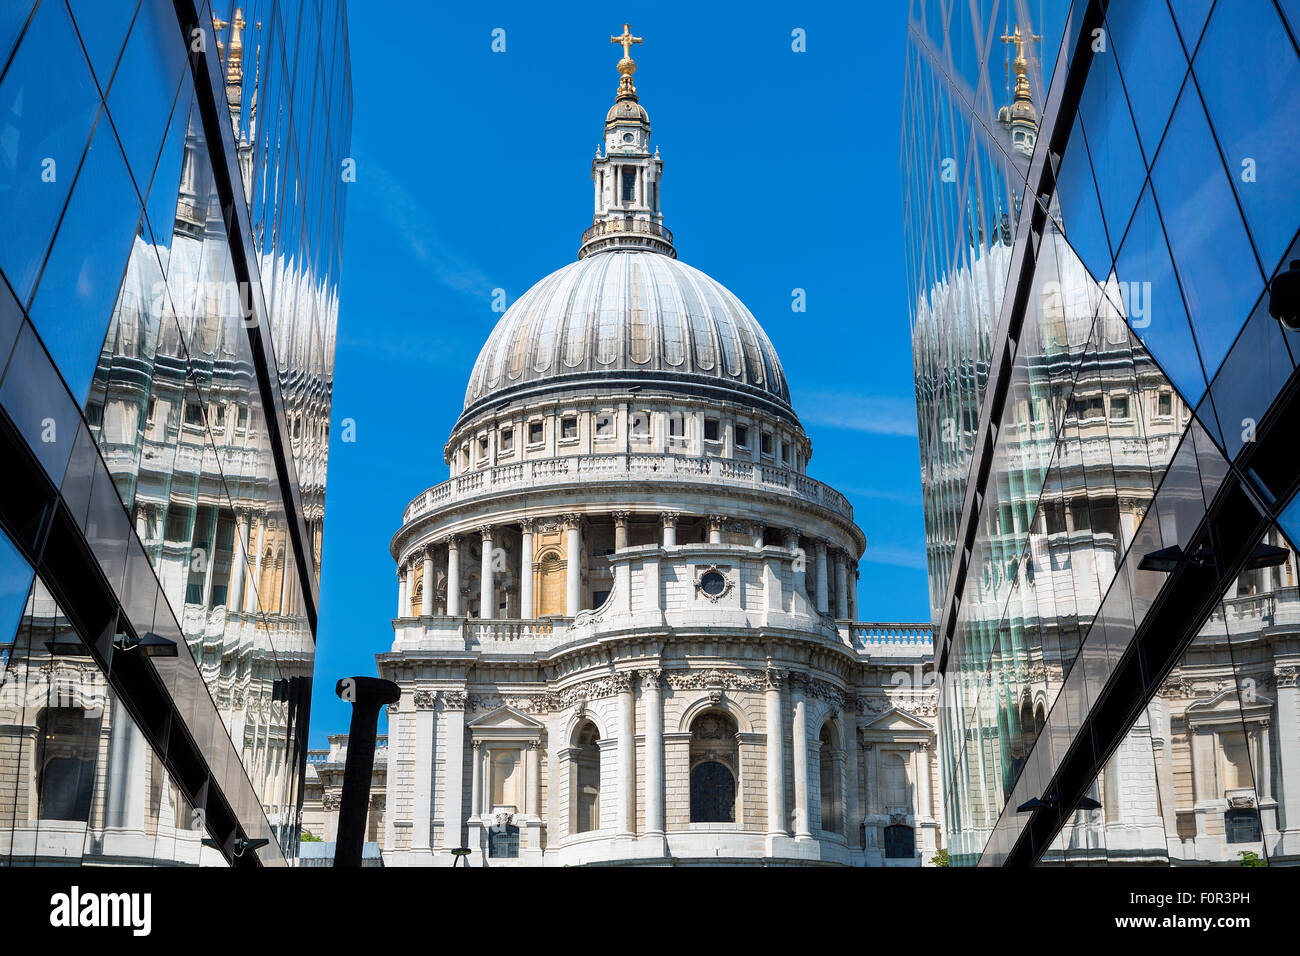 England, London, St. Paul's Cathedral - Stock Image